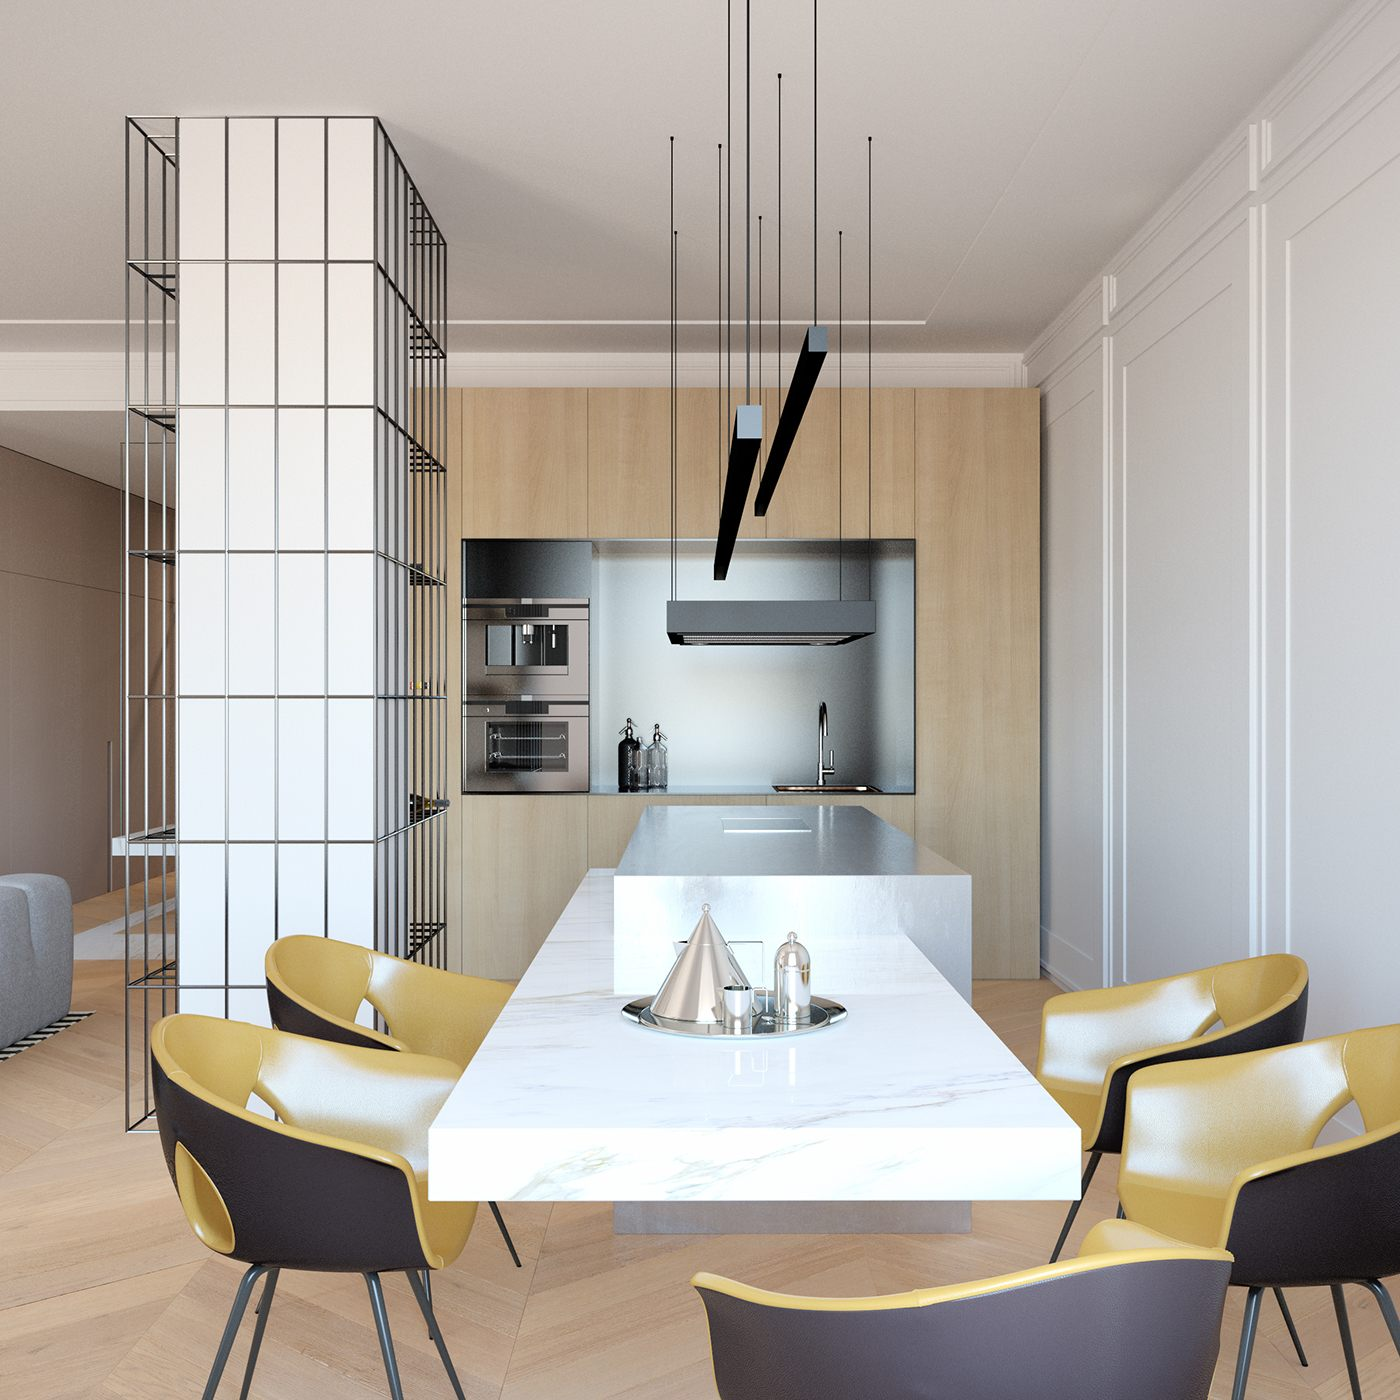 4 Elements Could Bring Out Traditional Kitchen Designs: Modern Decor Meets Classical Features In Two Transitional